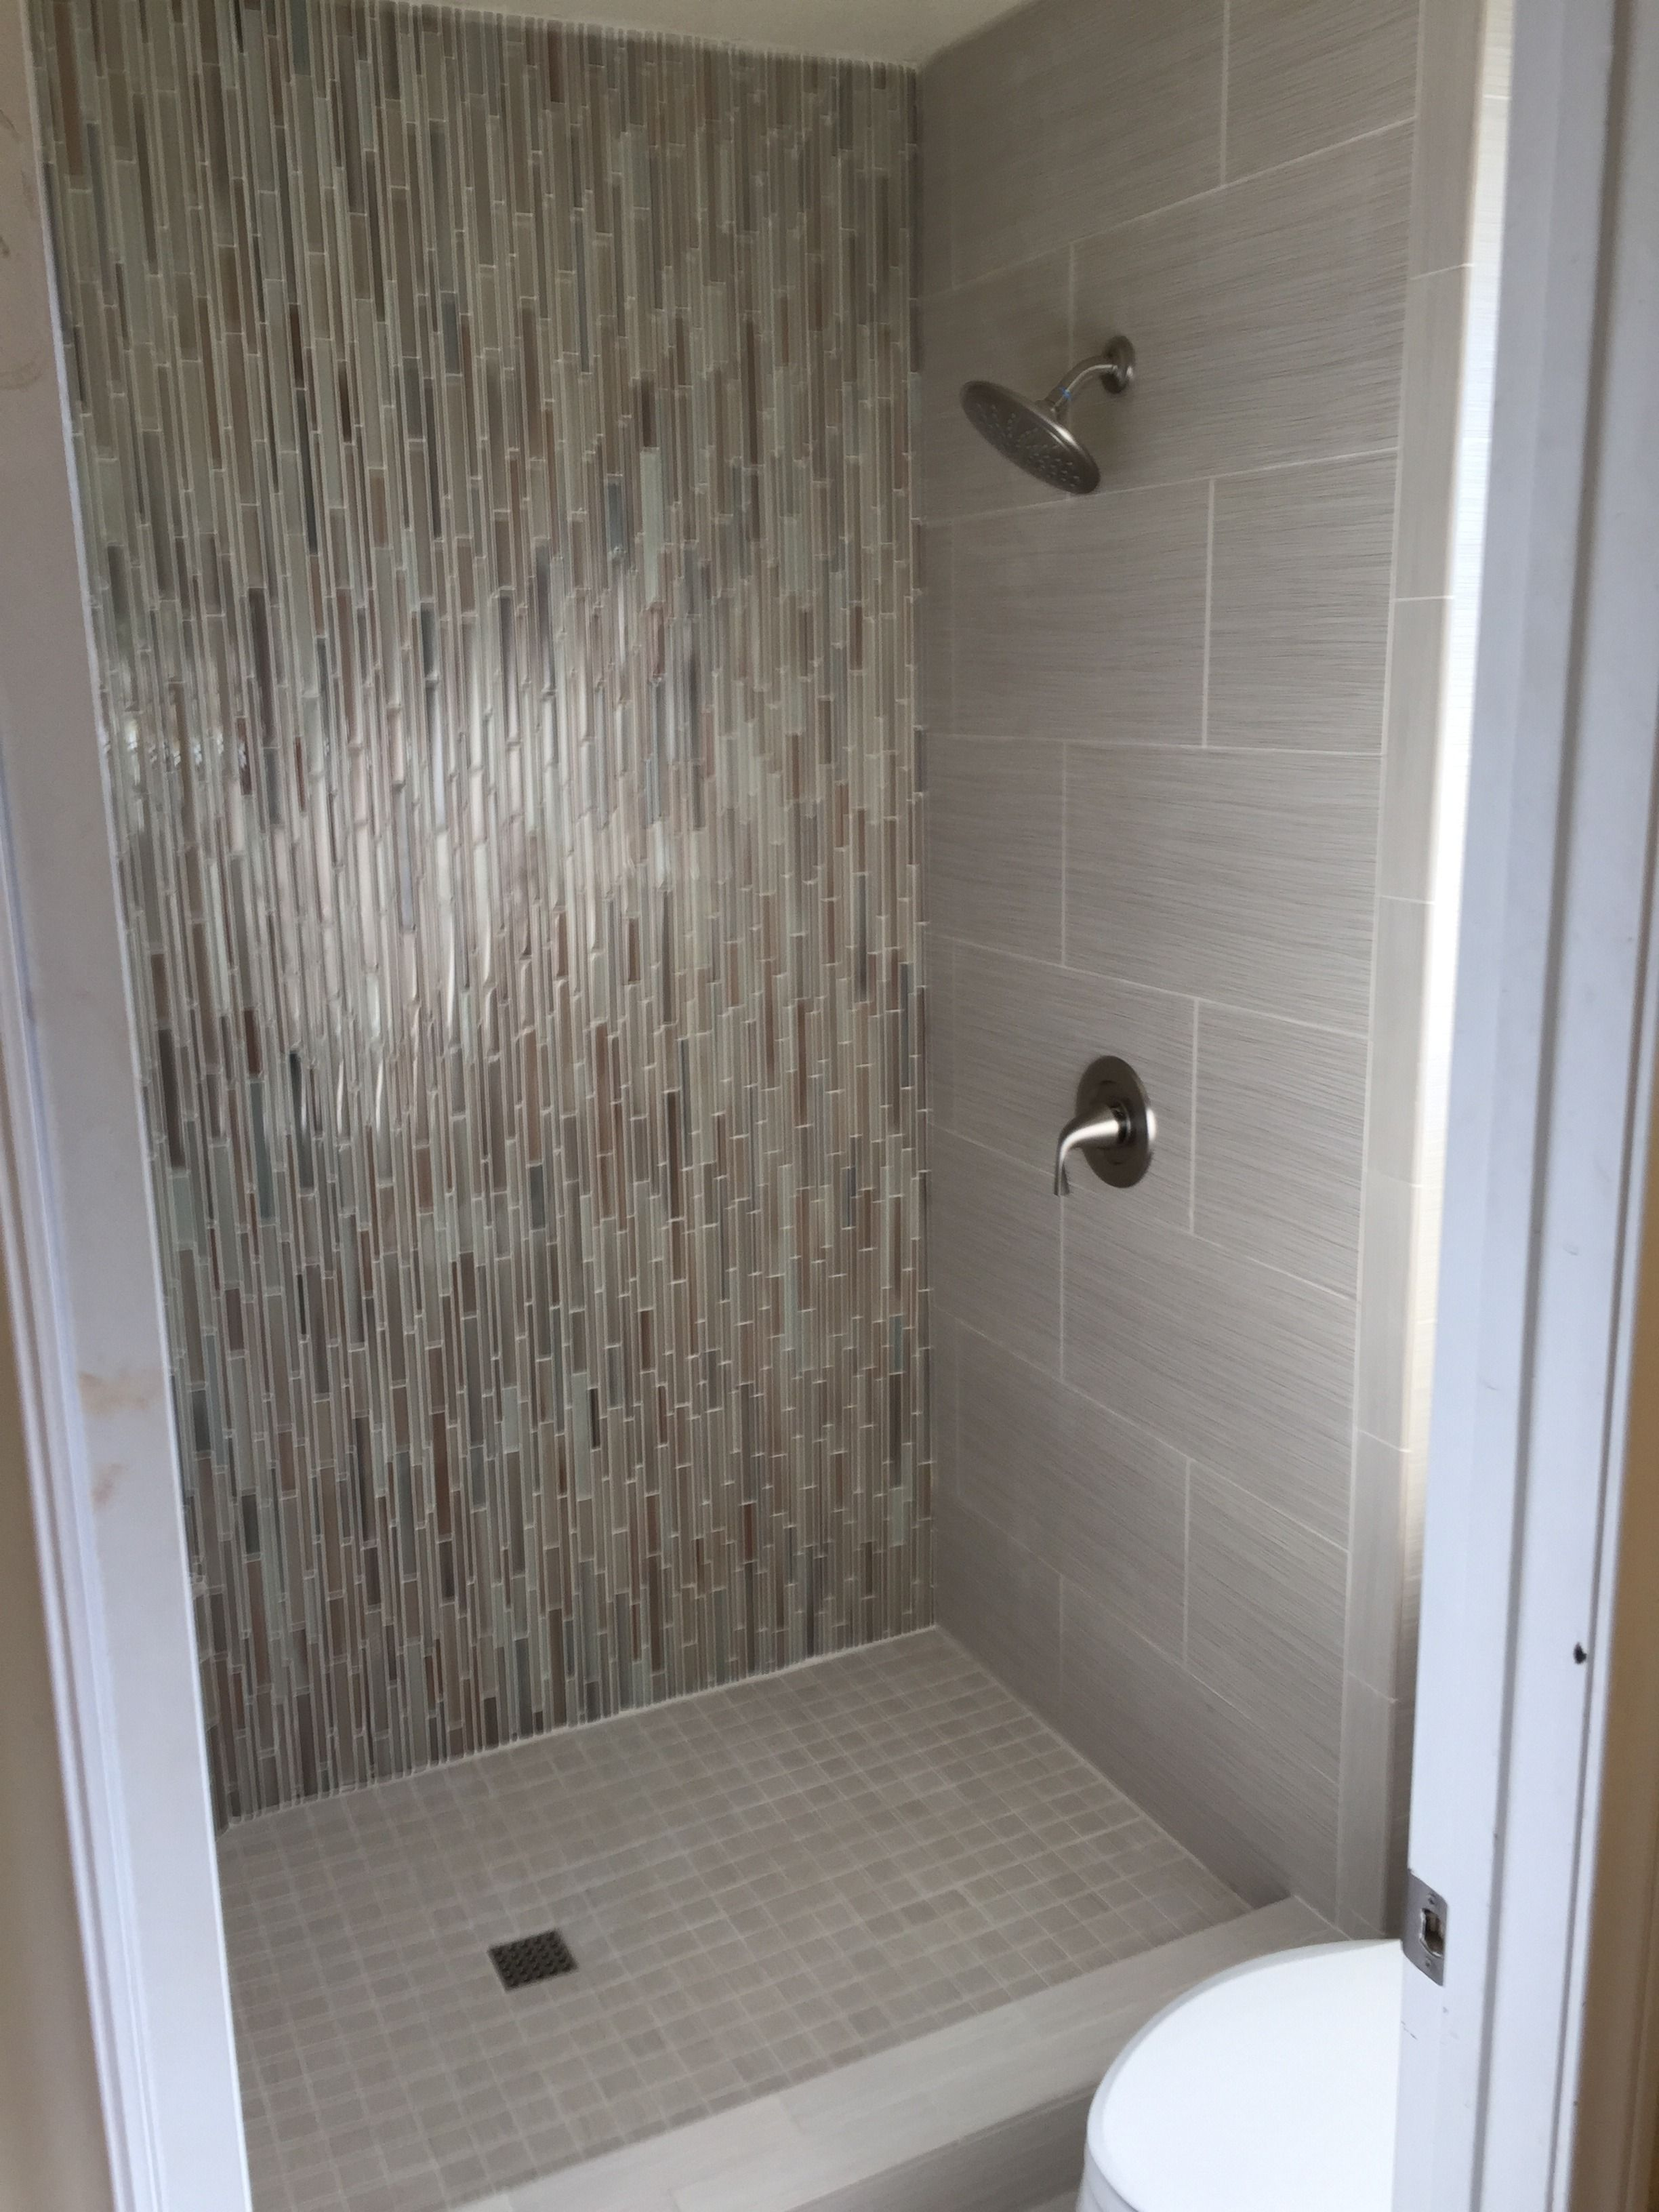 Arizona bathroom remodel - Need A Porcelain Tile For A Bathroom Remodel Fibra Linen Is A Great Choice 12x24 On Your Walls With 2x2 On The Shower Floor